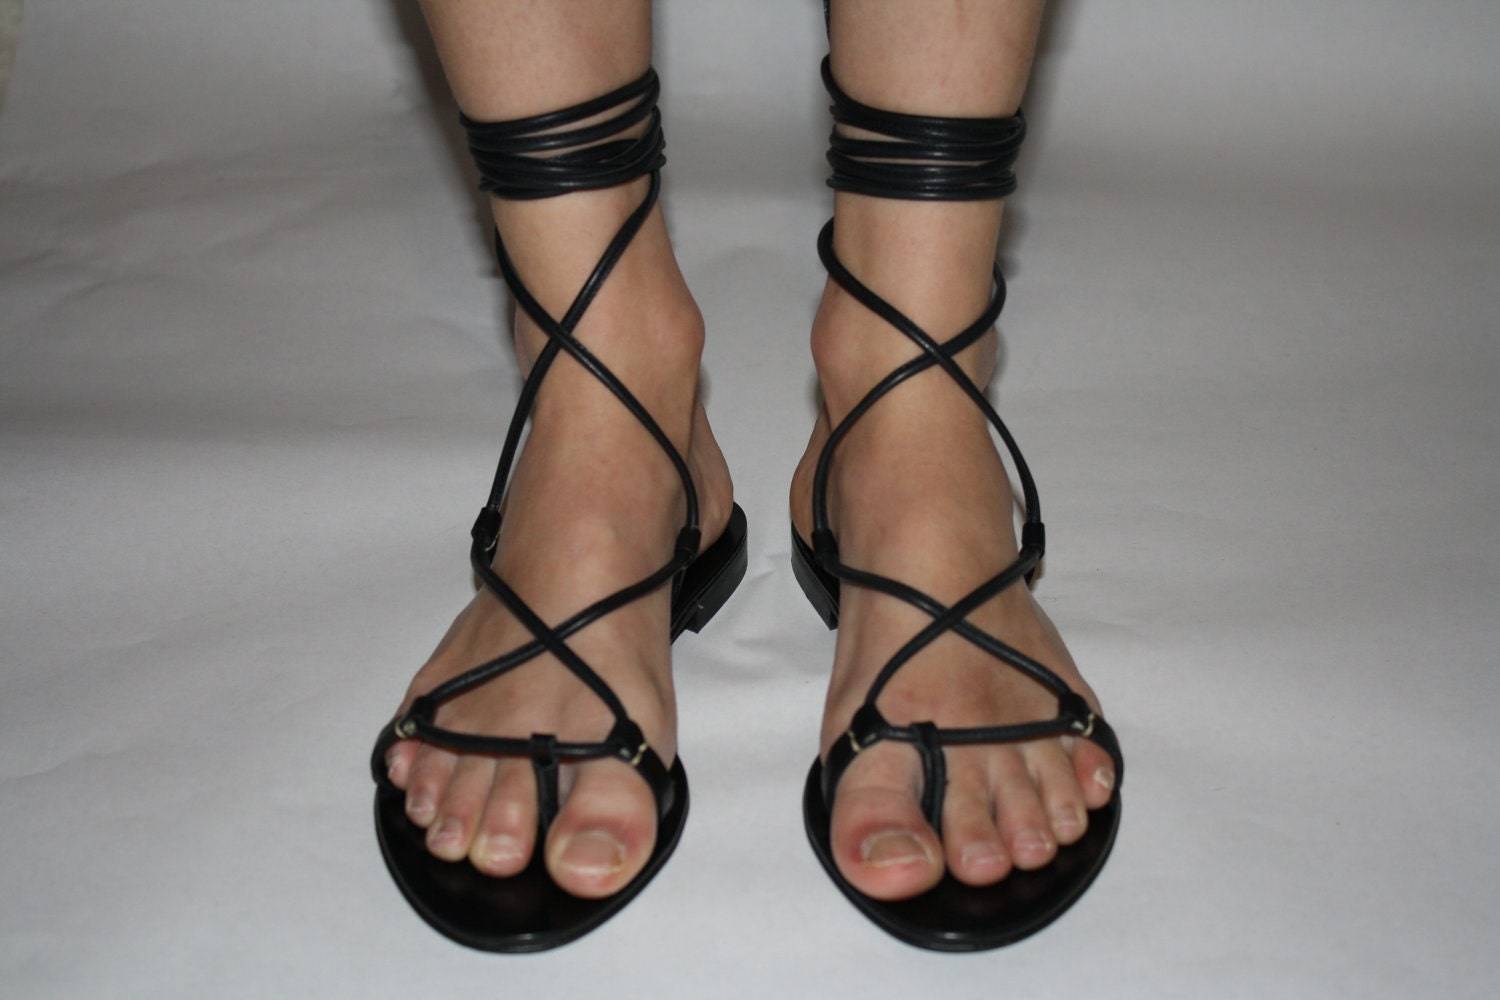 Lace up gladiator sandals - deals on 1001 Blocks